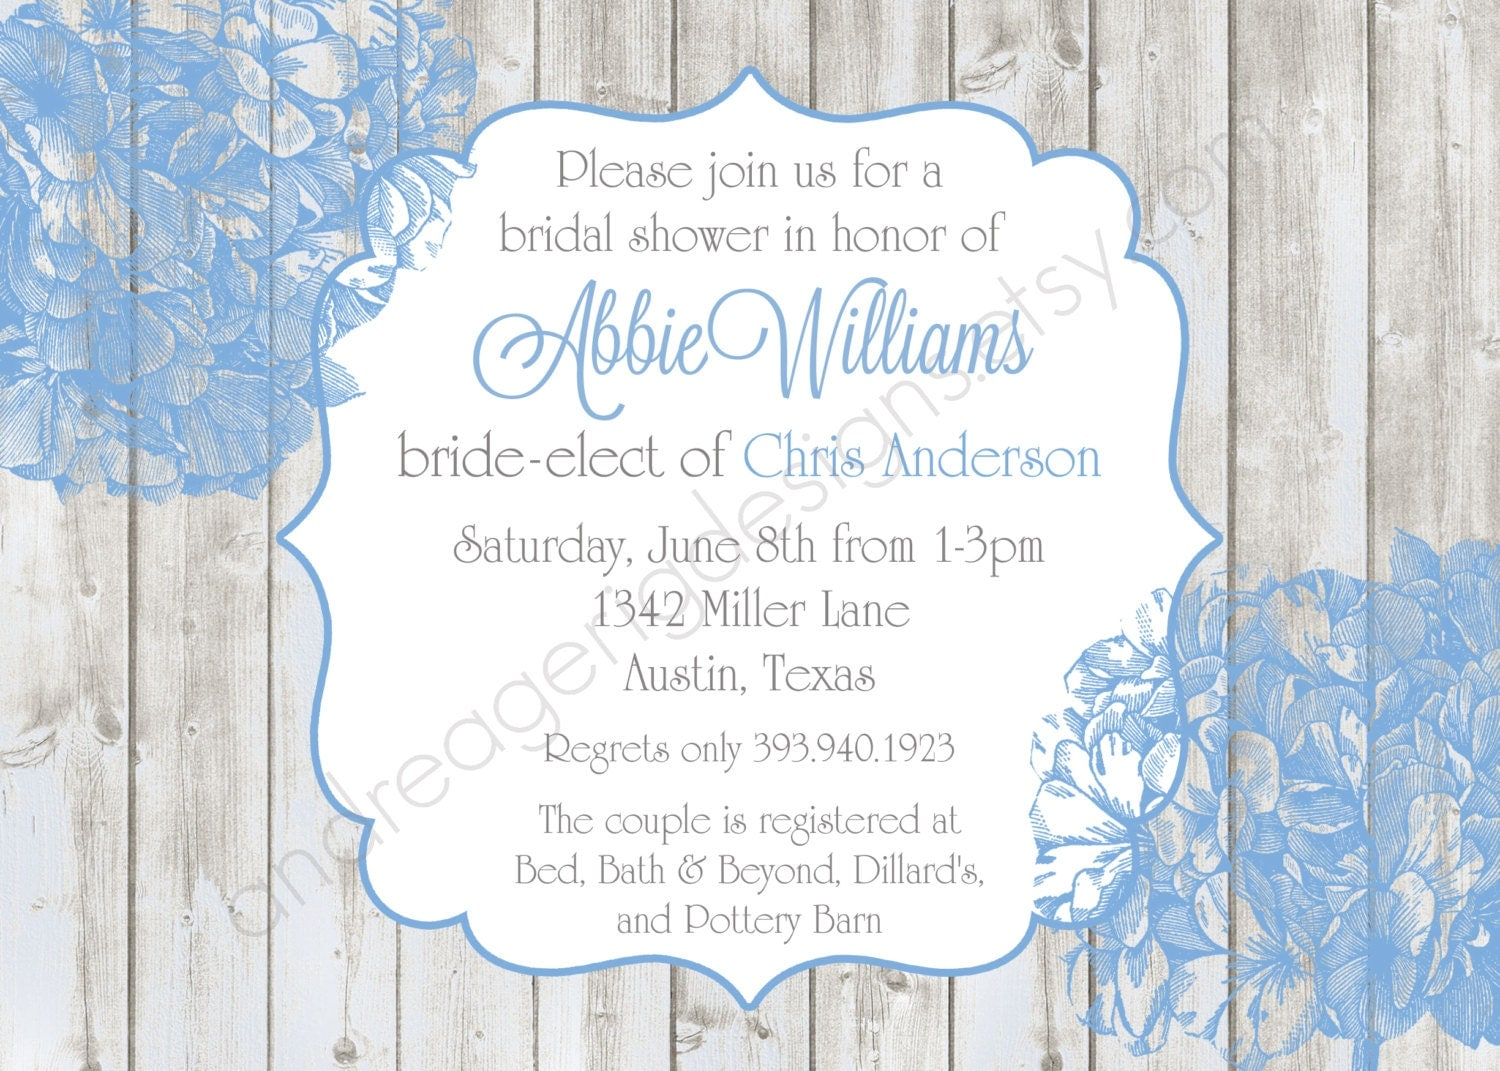 Microsoft Word Invitation Templates Free Interesting Bridal Shower Invitations Microsoft Word Bridal Shower Invitation .